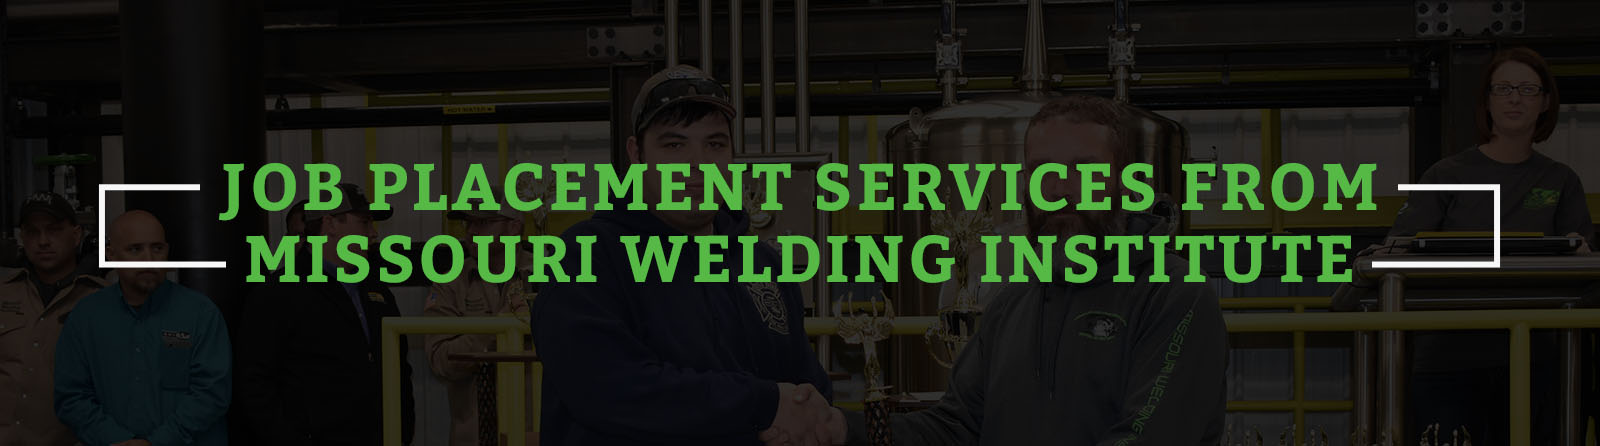 JOB PLACEMENT SERVICES FROM MISSOURI WELDING INSTITUTE